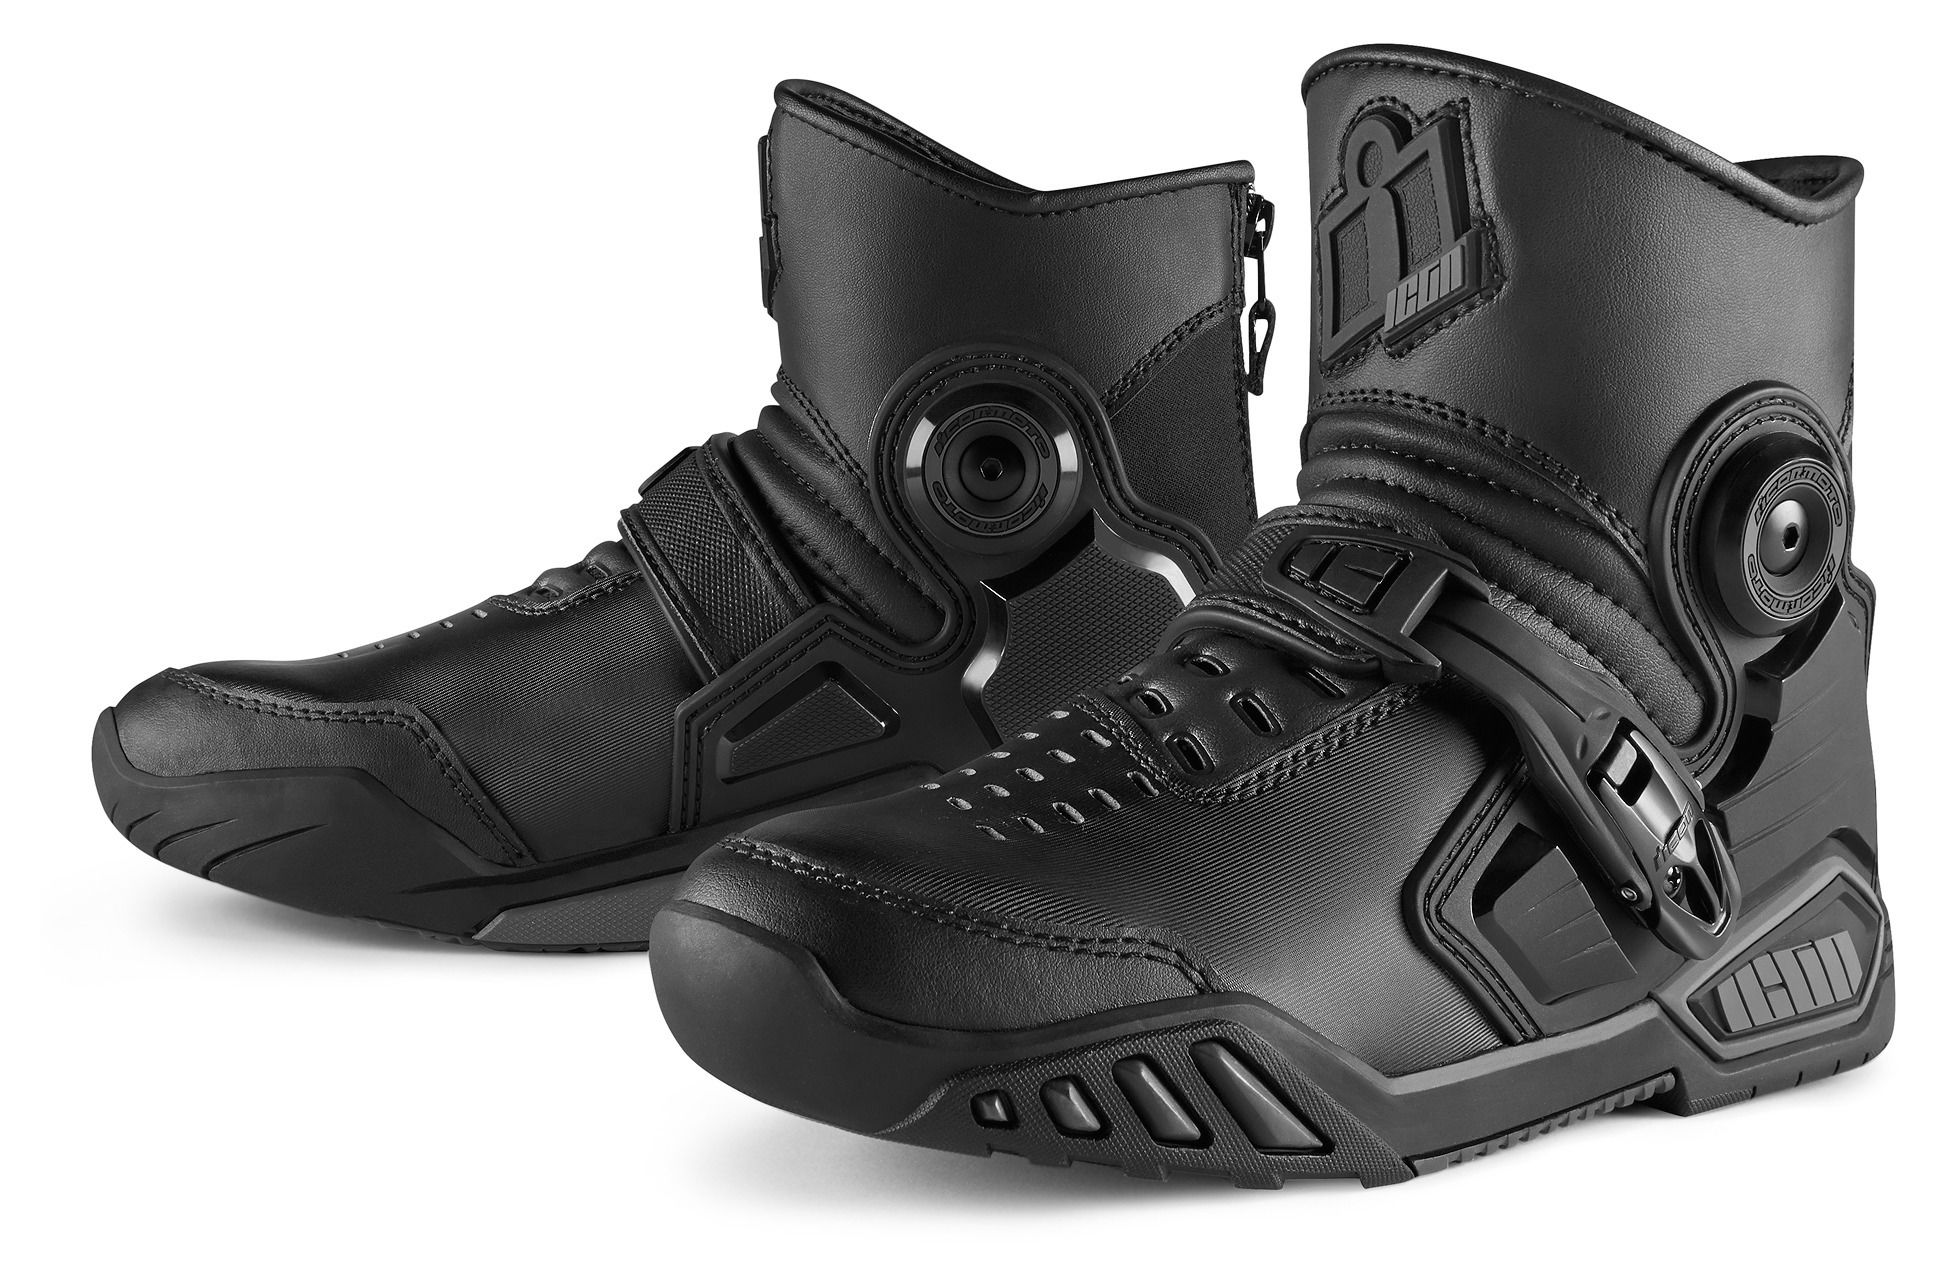 88a97c4f837 Icon Accelerant Boots | 20% ($36.00) Off!